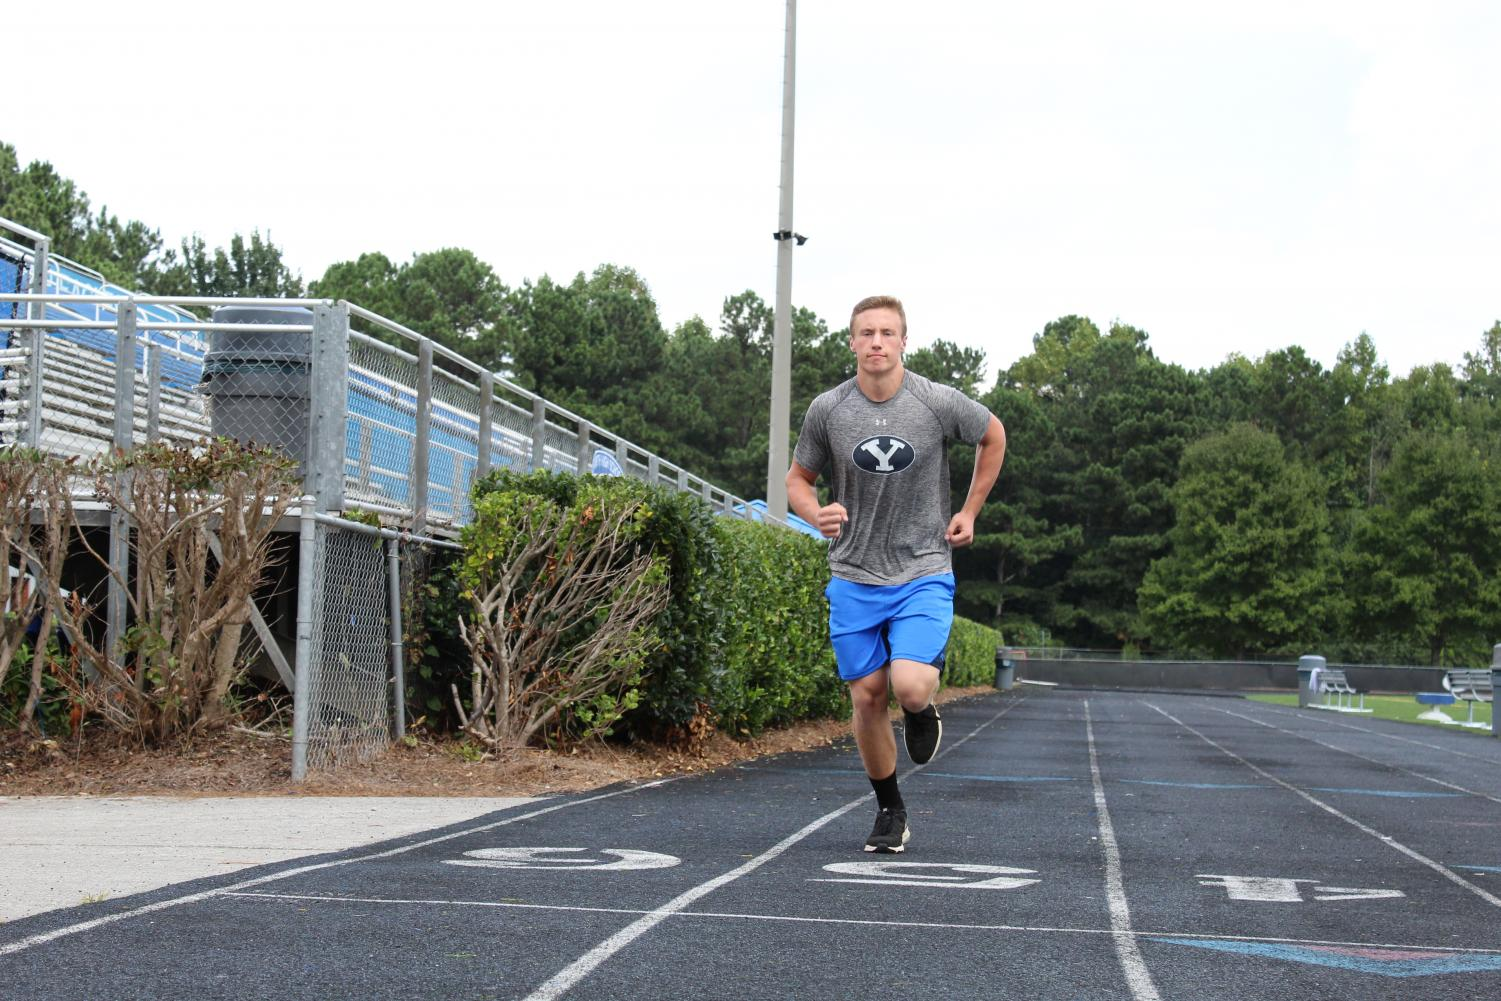 Taft Hilton, a varsity football player, runs the track at South Forsyth to warm up before practice.